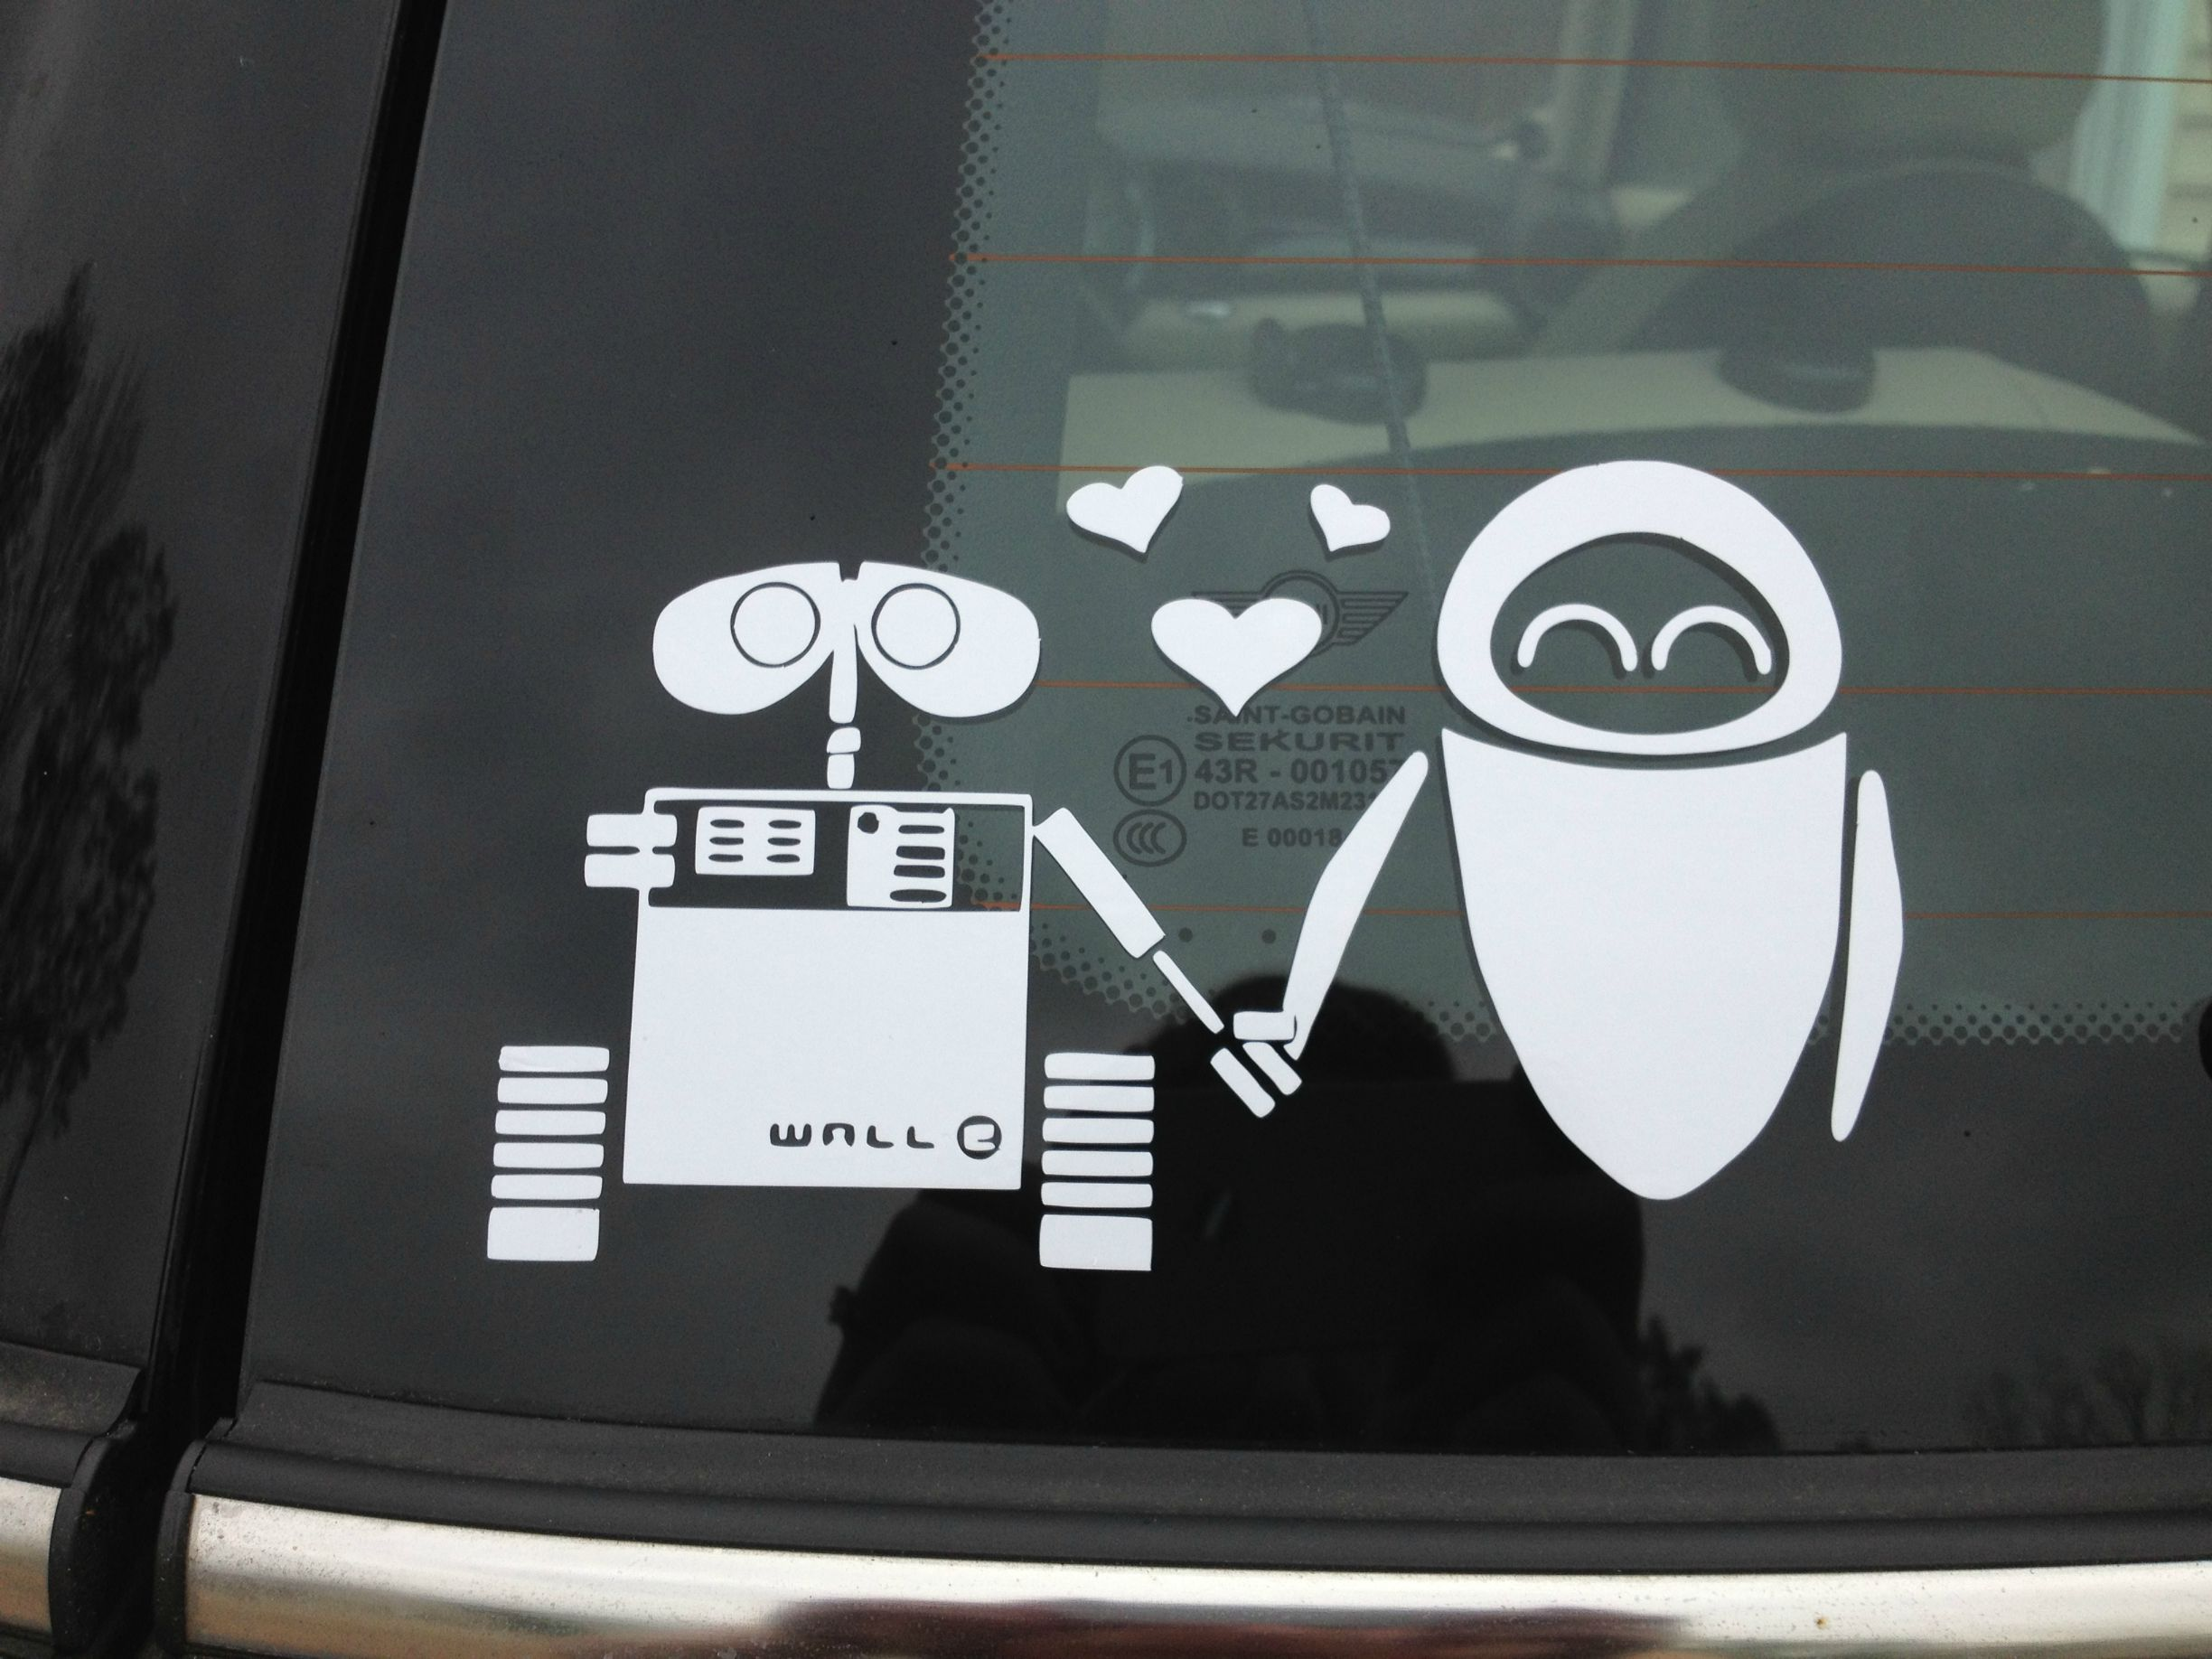 Car decals design your own - Find Best Value And Selection For Your Disney White Sticker Decal Wall E Eve Robot Love Car Window Macbook Laptop Wall Search On Ebay